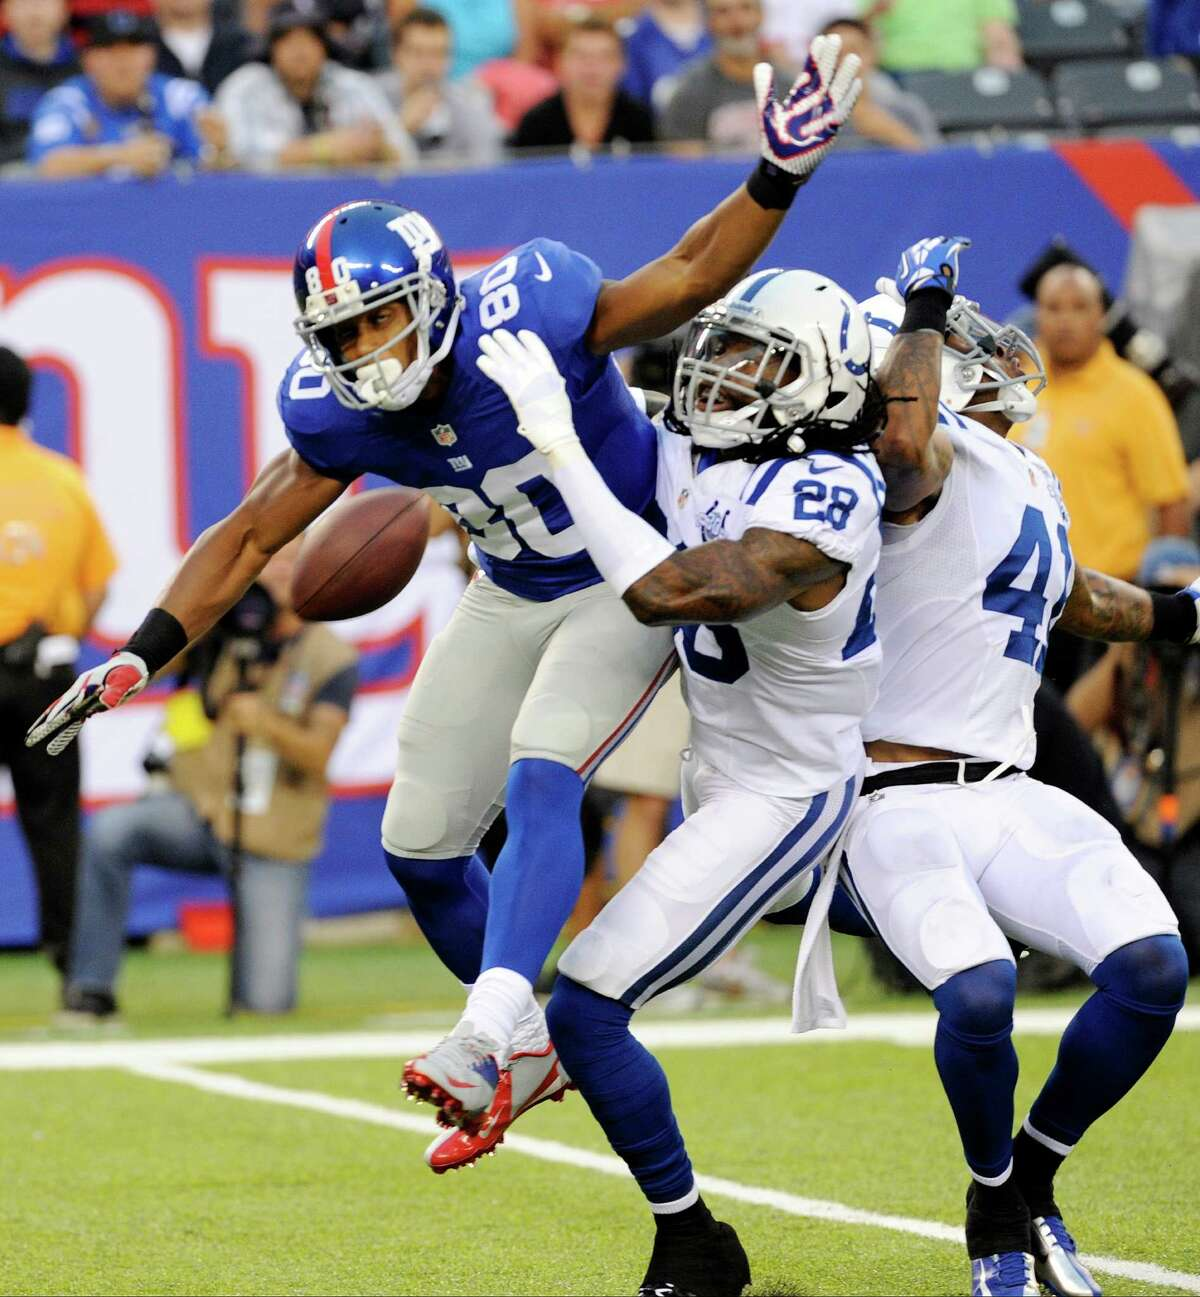 Indianapolis Colts cornerback Greg Toler (28) and Antoine Bethea (41) defend against New York Giants wide receiver Victor Cruz (80) during the first half of an NFL preseason football game on Sunday, Aug. 18, 2013, in East Rutherford, N.J. Pass interference was called on the play. (AP Photo/Bill Kostroun) ORG XMIT: ERU102